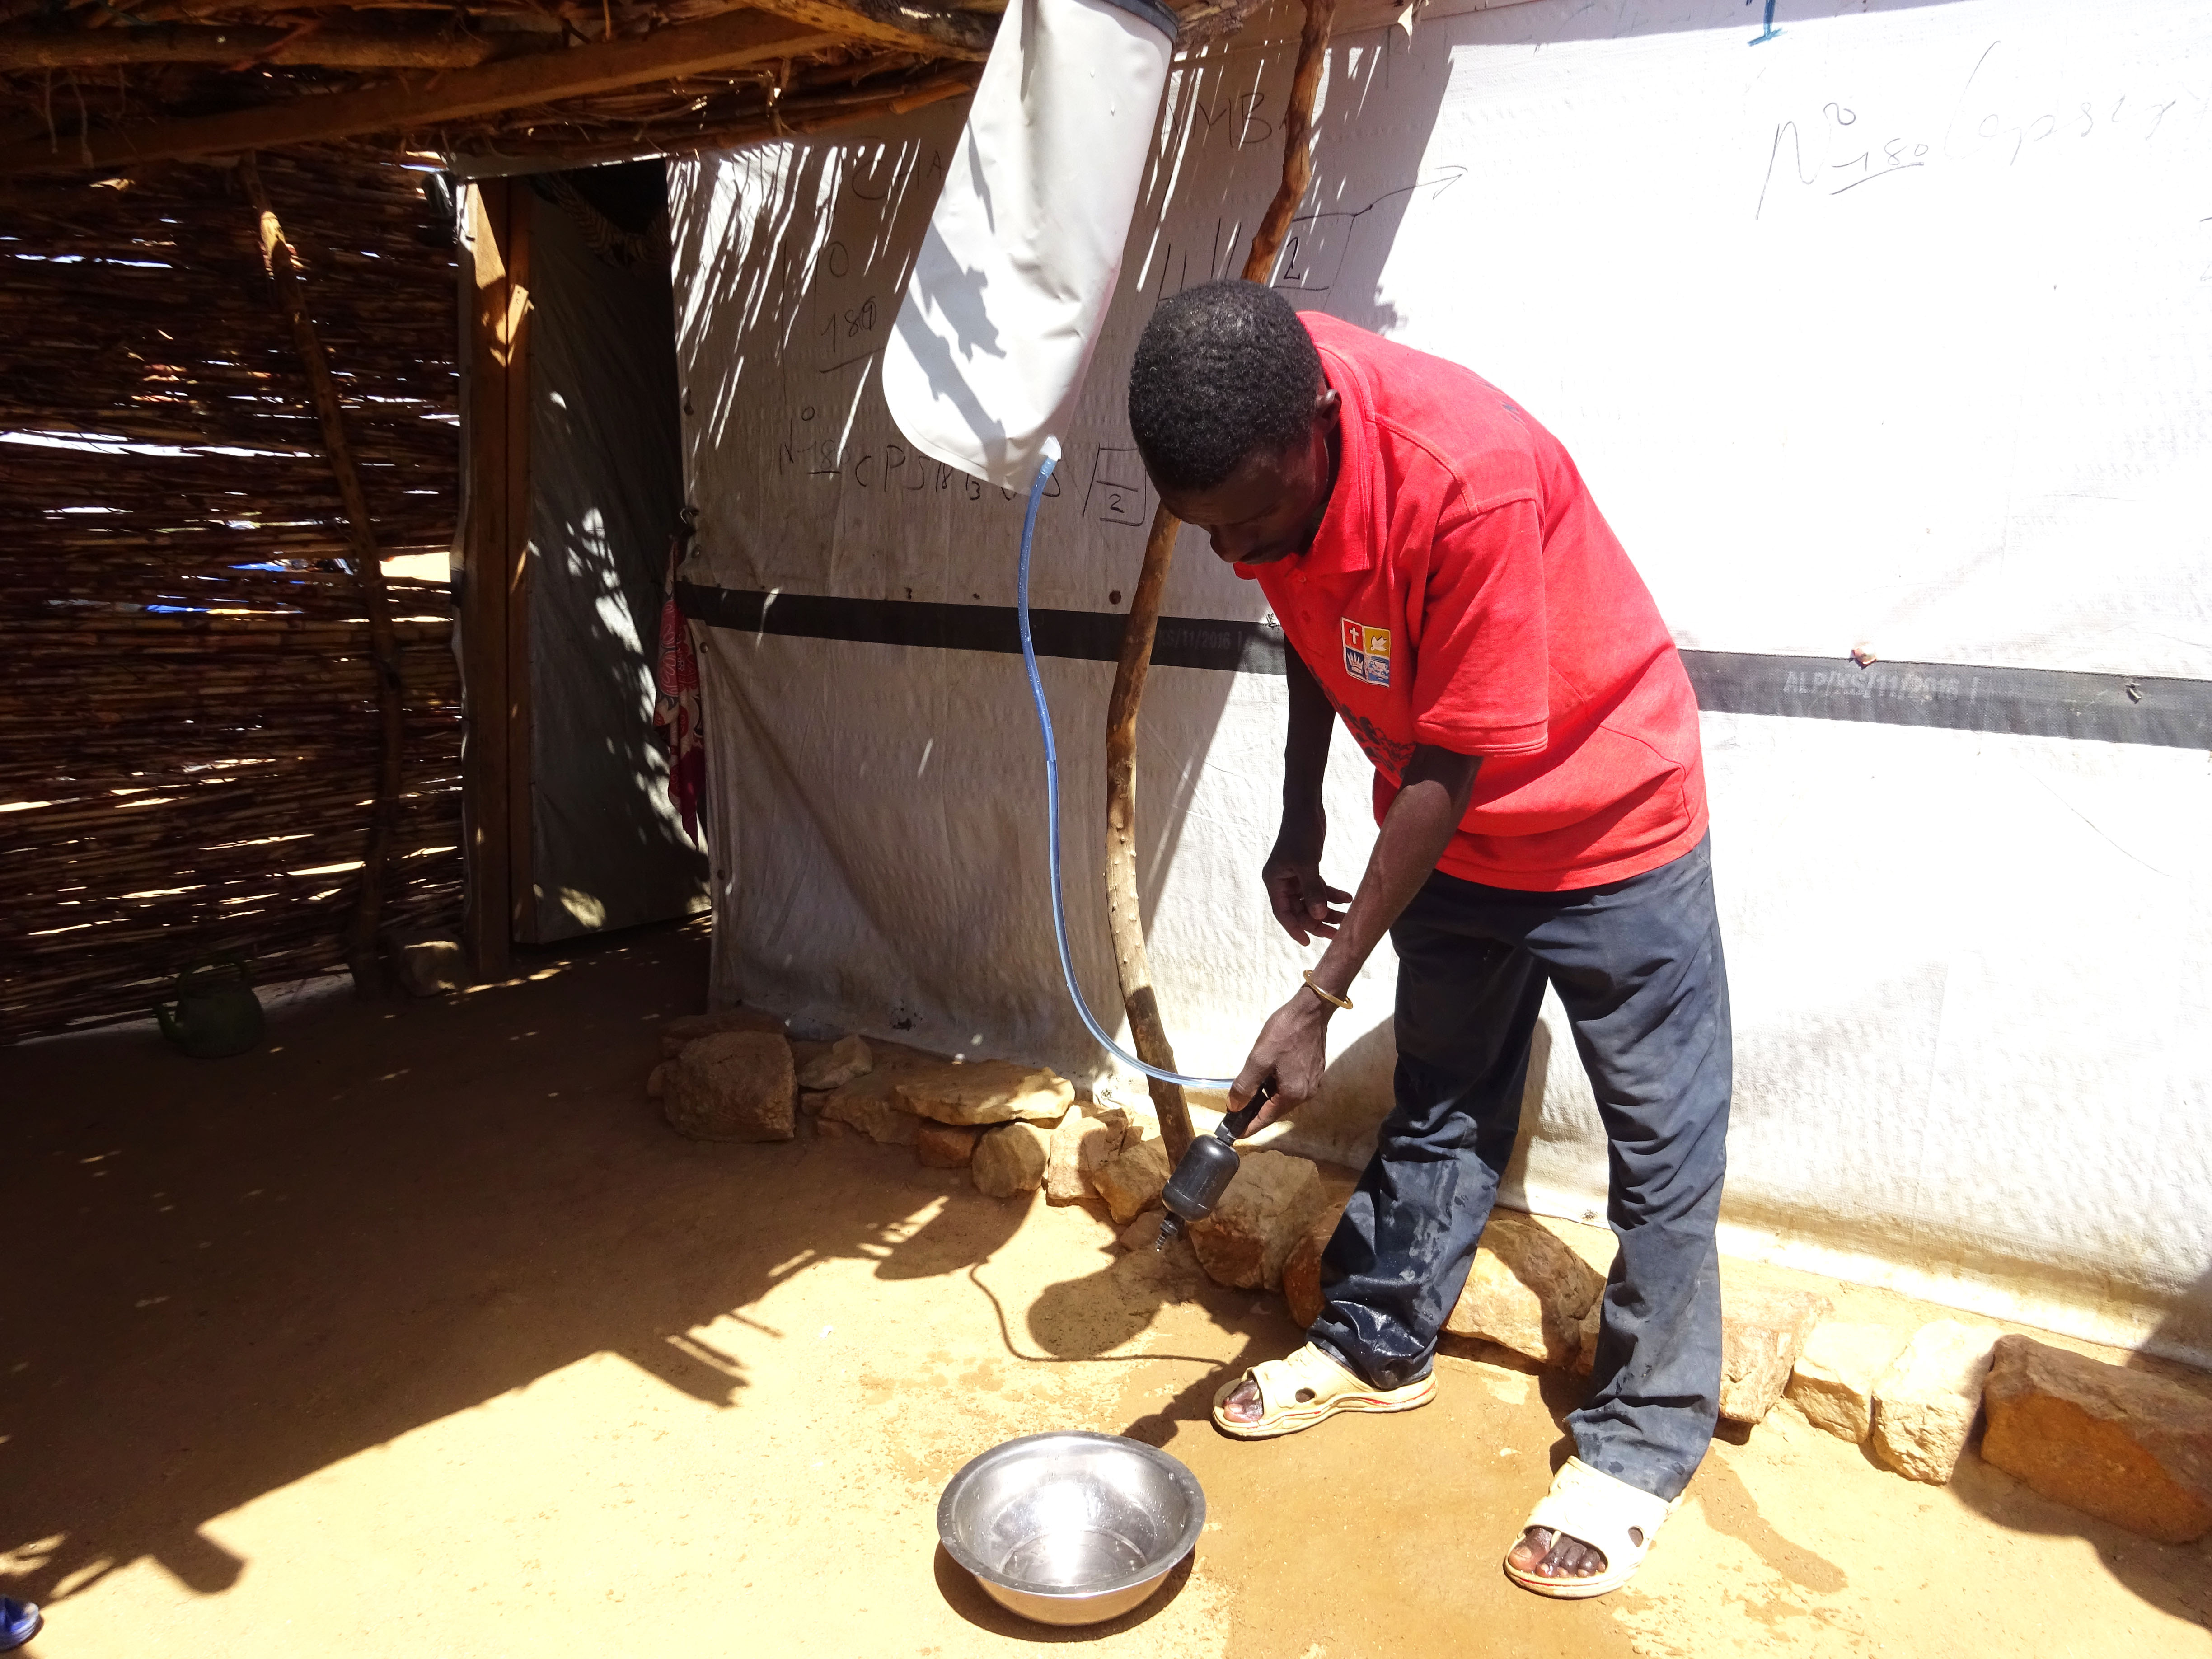 A man holds the hose from a water filter bag as water drips into a bowl on the ground